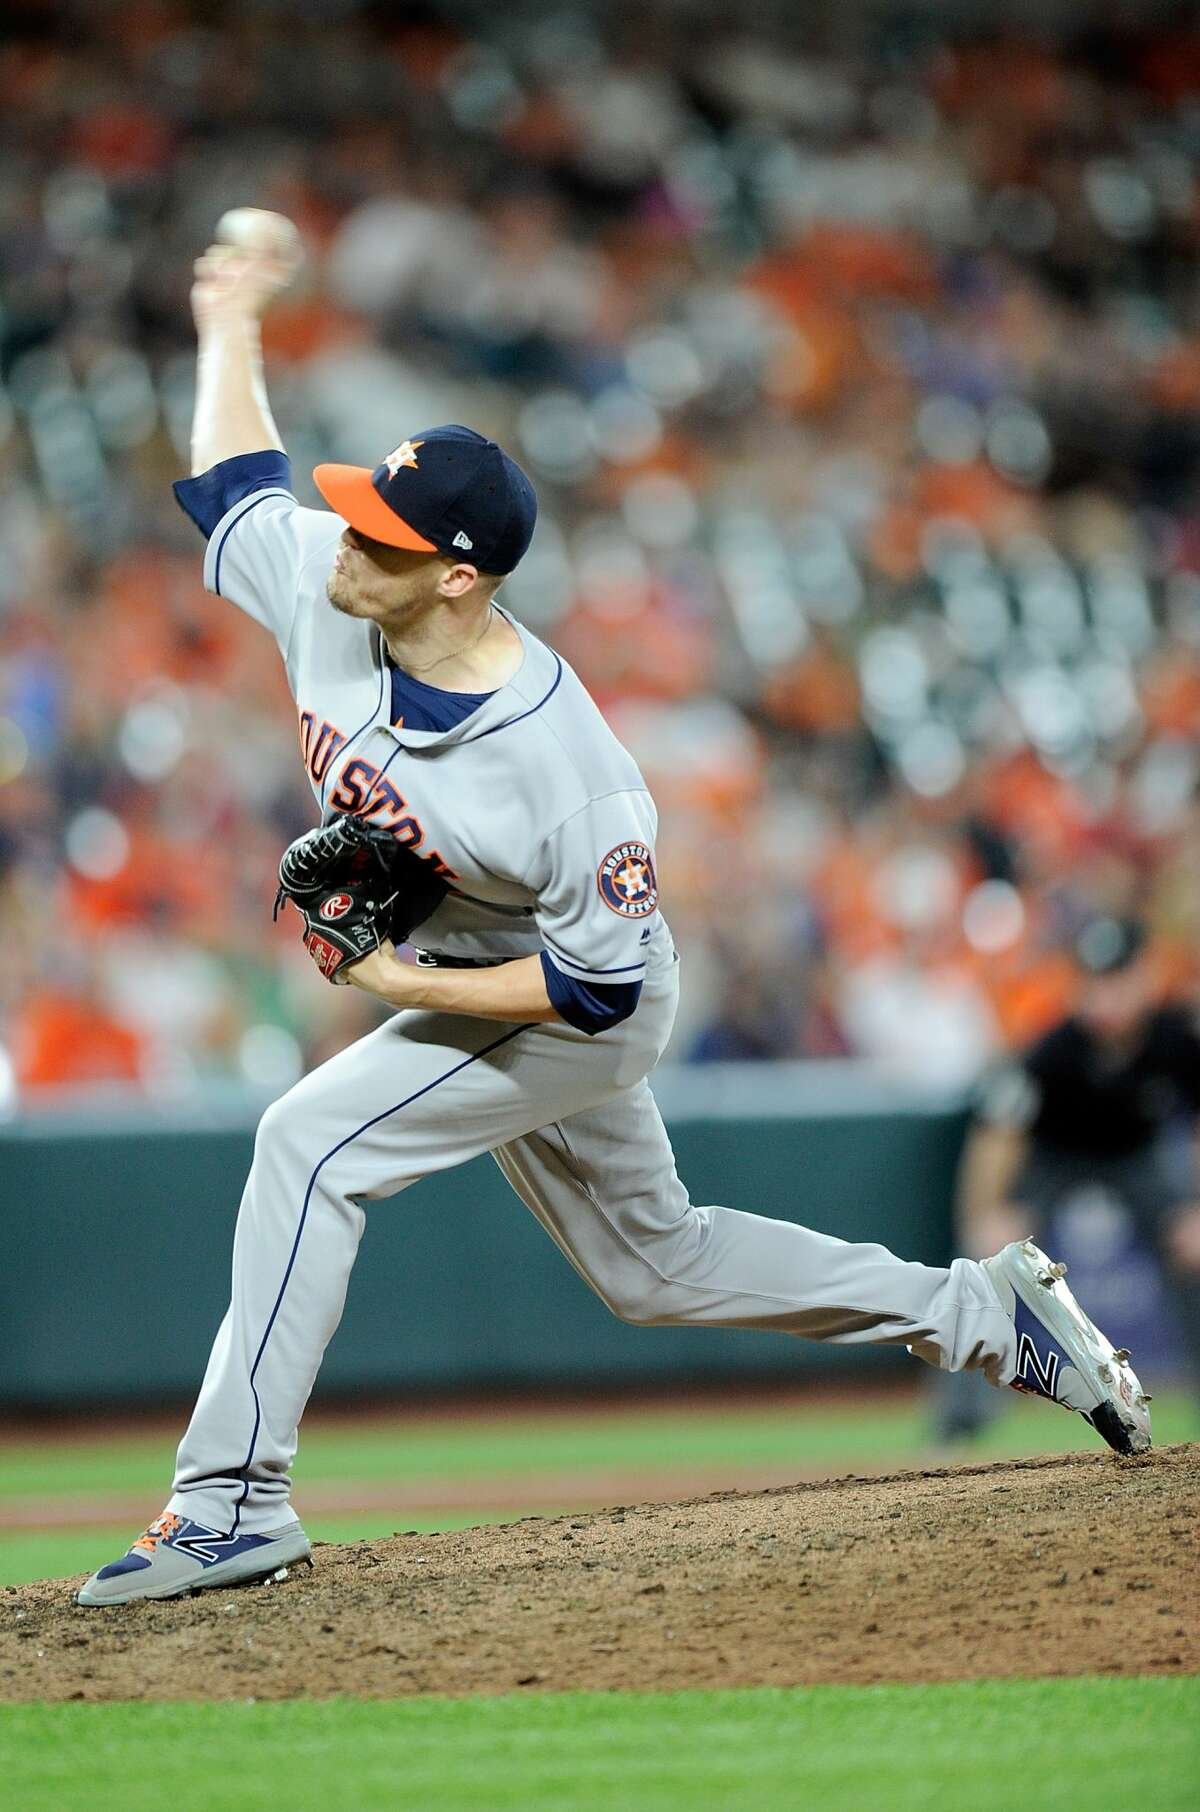 BALTIMORE, MD - JULY 21: Ken Giles #53 of the Houston Astros pitches in the ninth inning against the Baltimore Orioles at Oriole Park at Camden Yards on July 21, 2017 in Baltimore, Maryland. Houston won the game 8-7. (Photo by Greg Fiume/Getty Images)